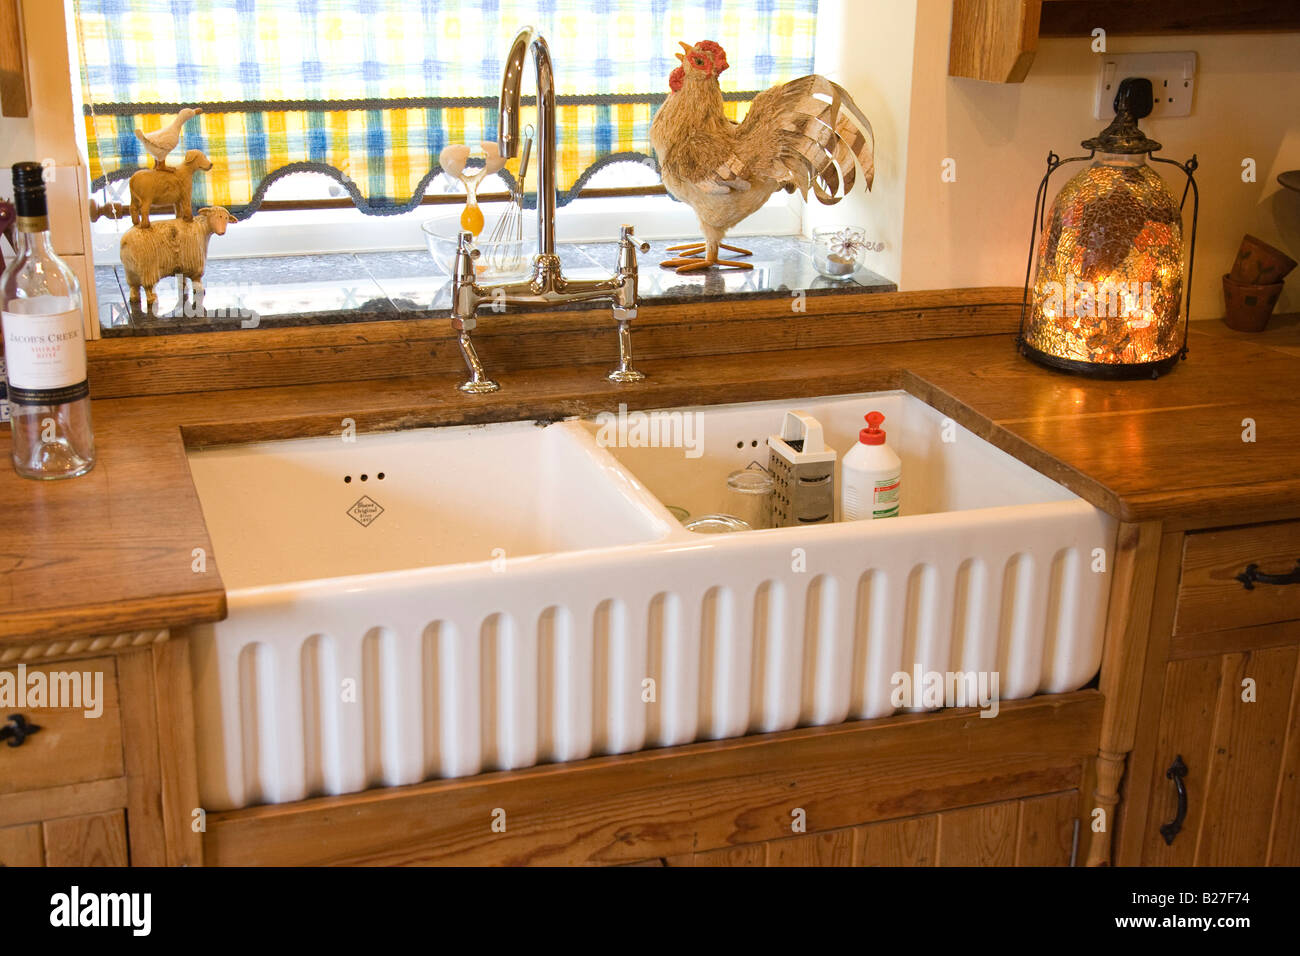 Shaws RIBCHESTER 800 traditional Belfast ceramic kitchen sink Stock ...